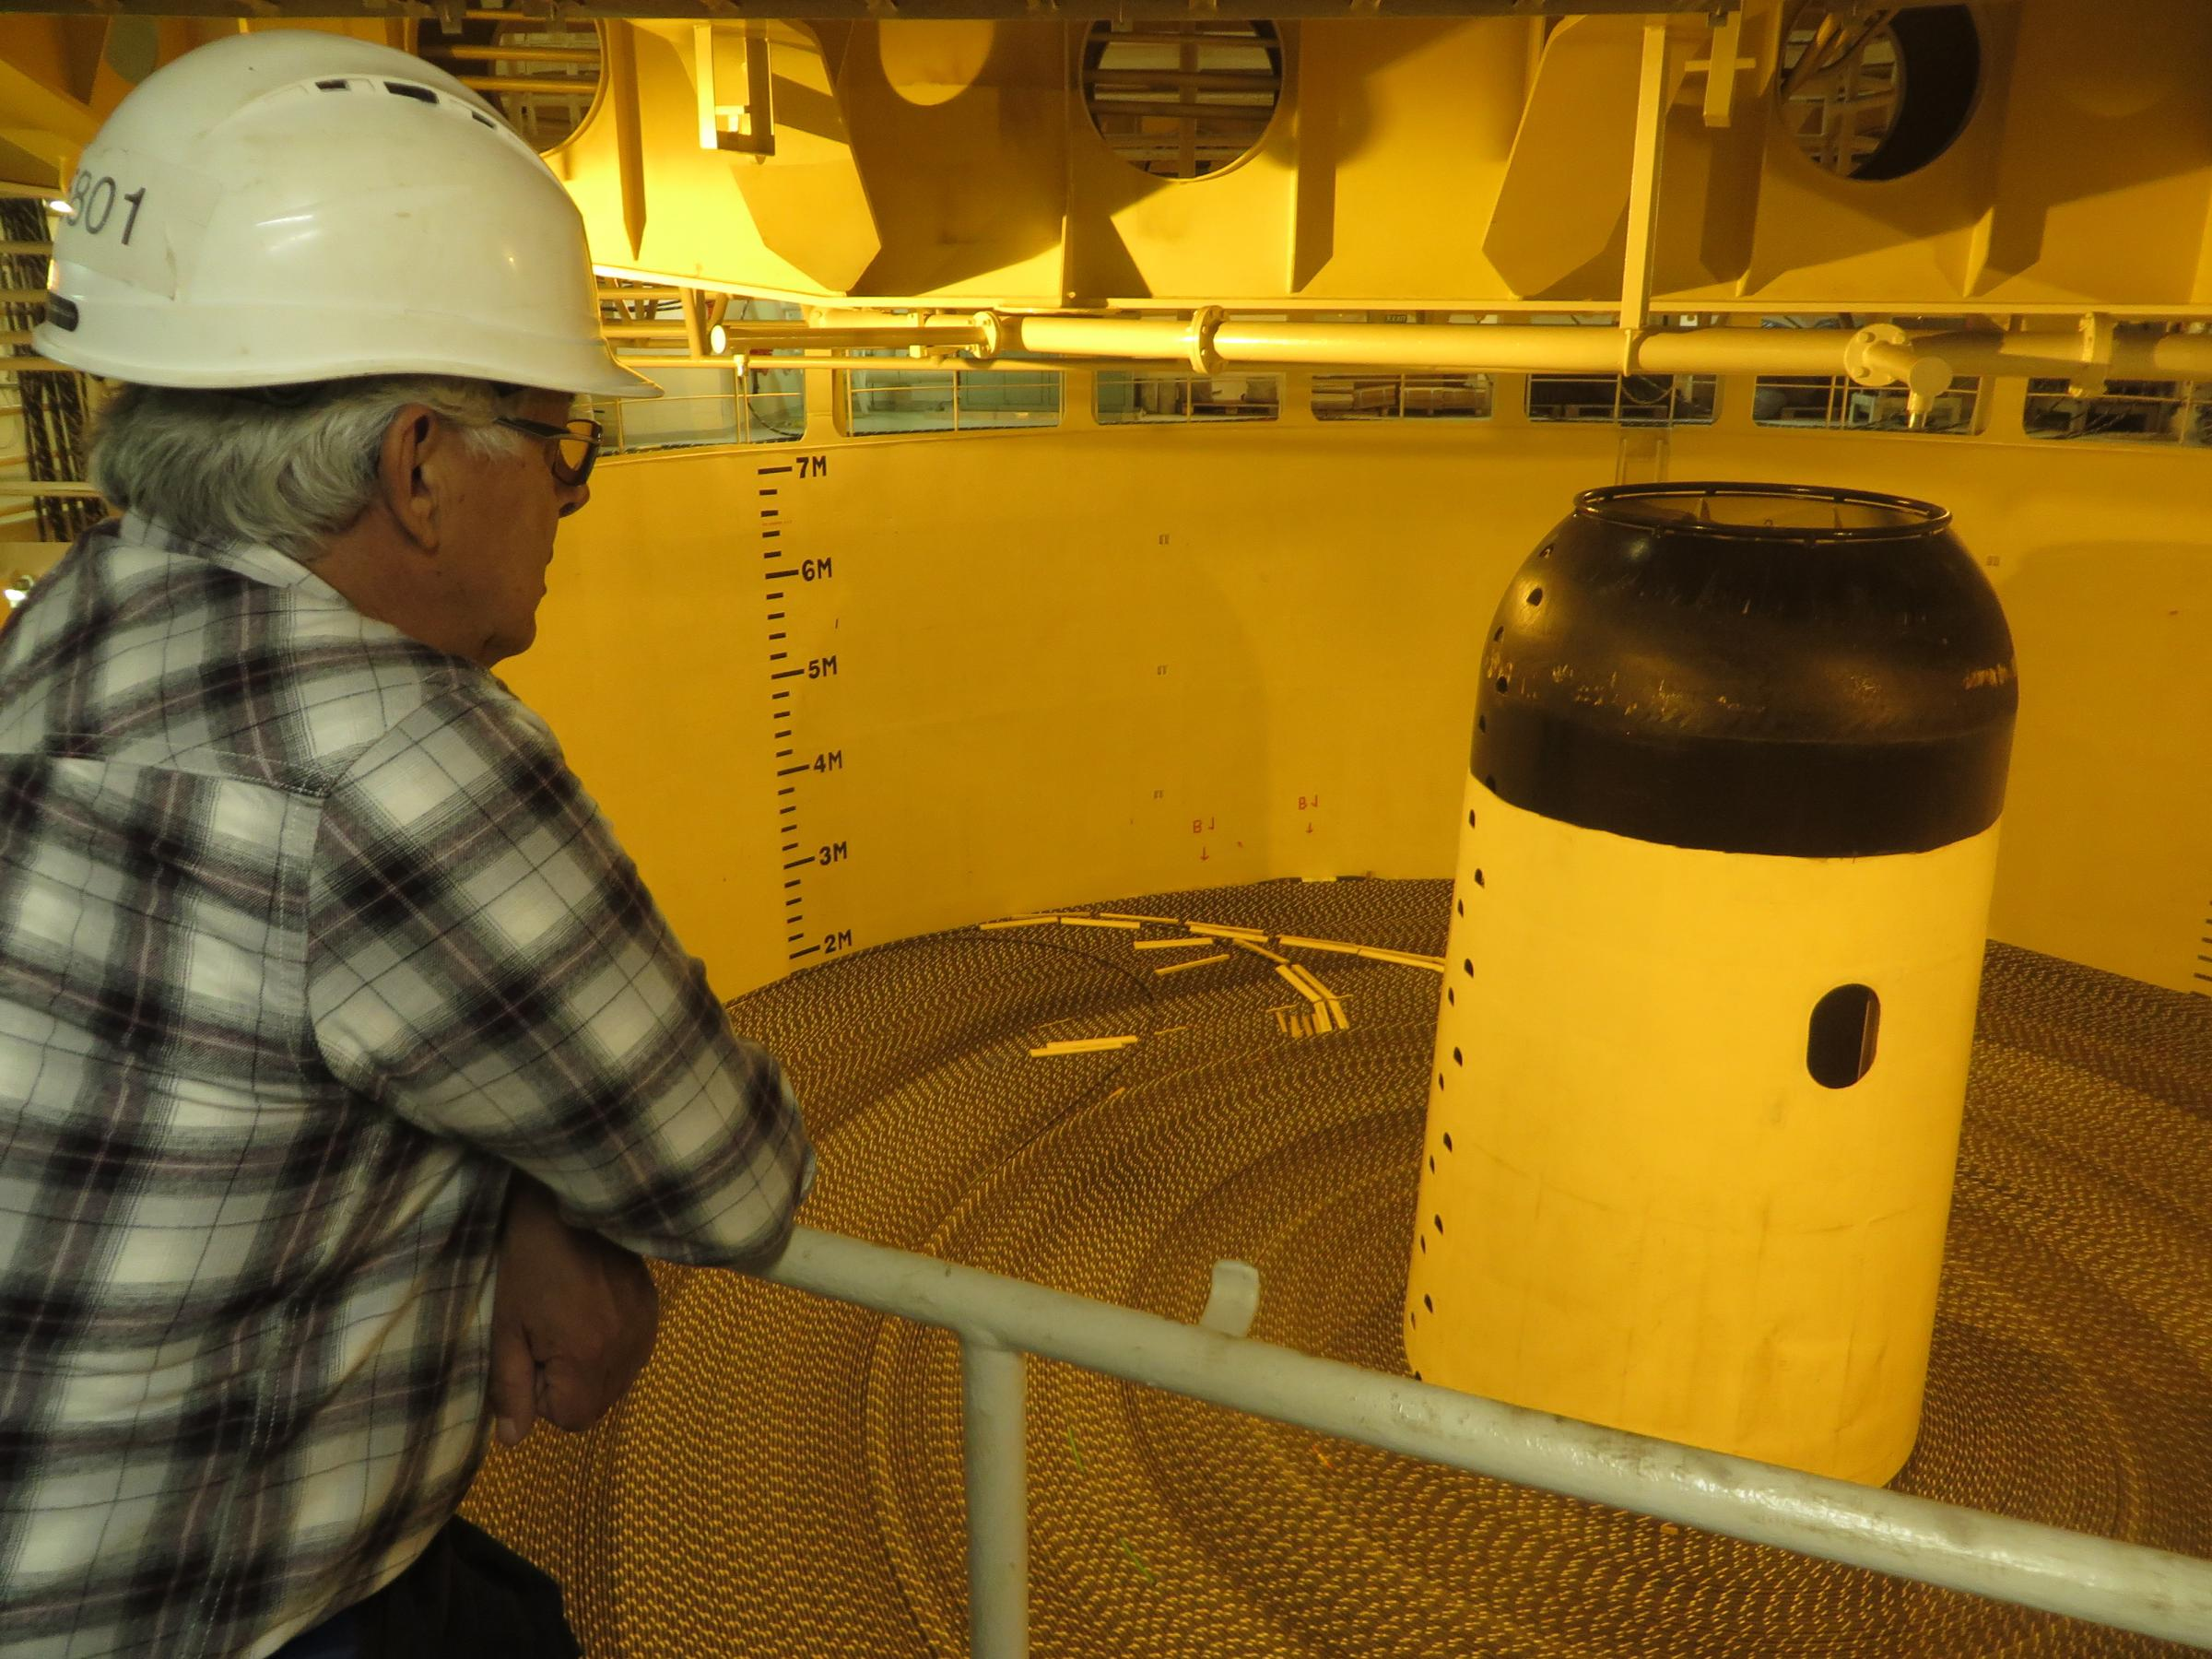 Reggie Joule looks over tanks of coiled fiber optic cable in the Ile de Brehat. (Photo by Laura Kraegel, KUCB - Unalaska)